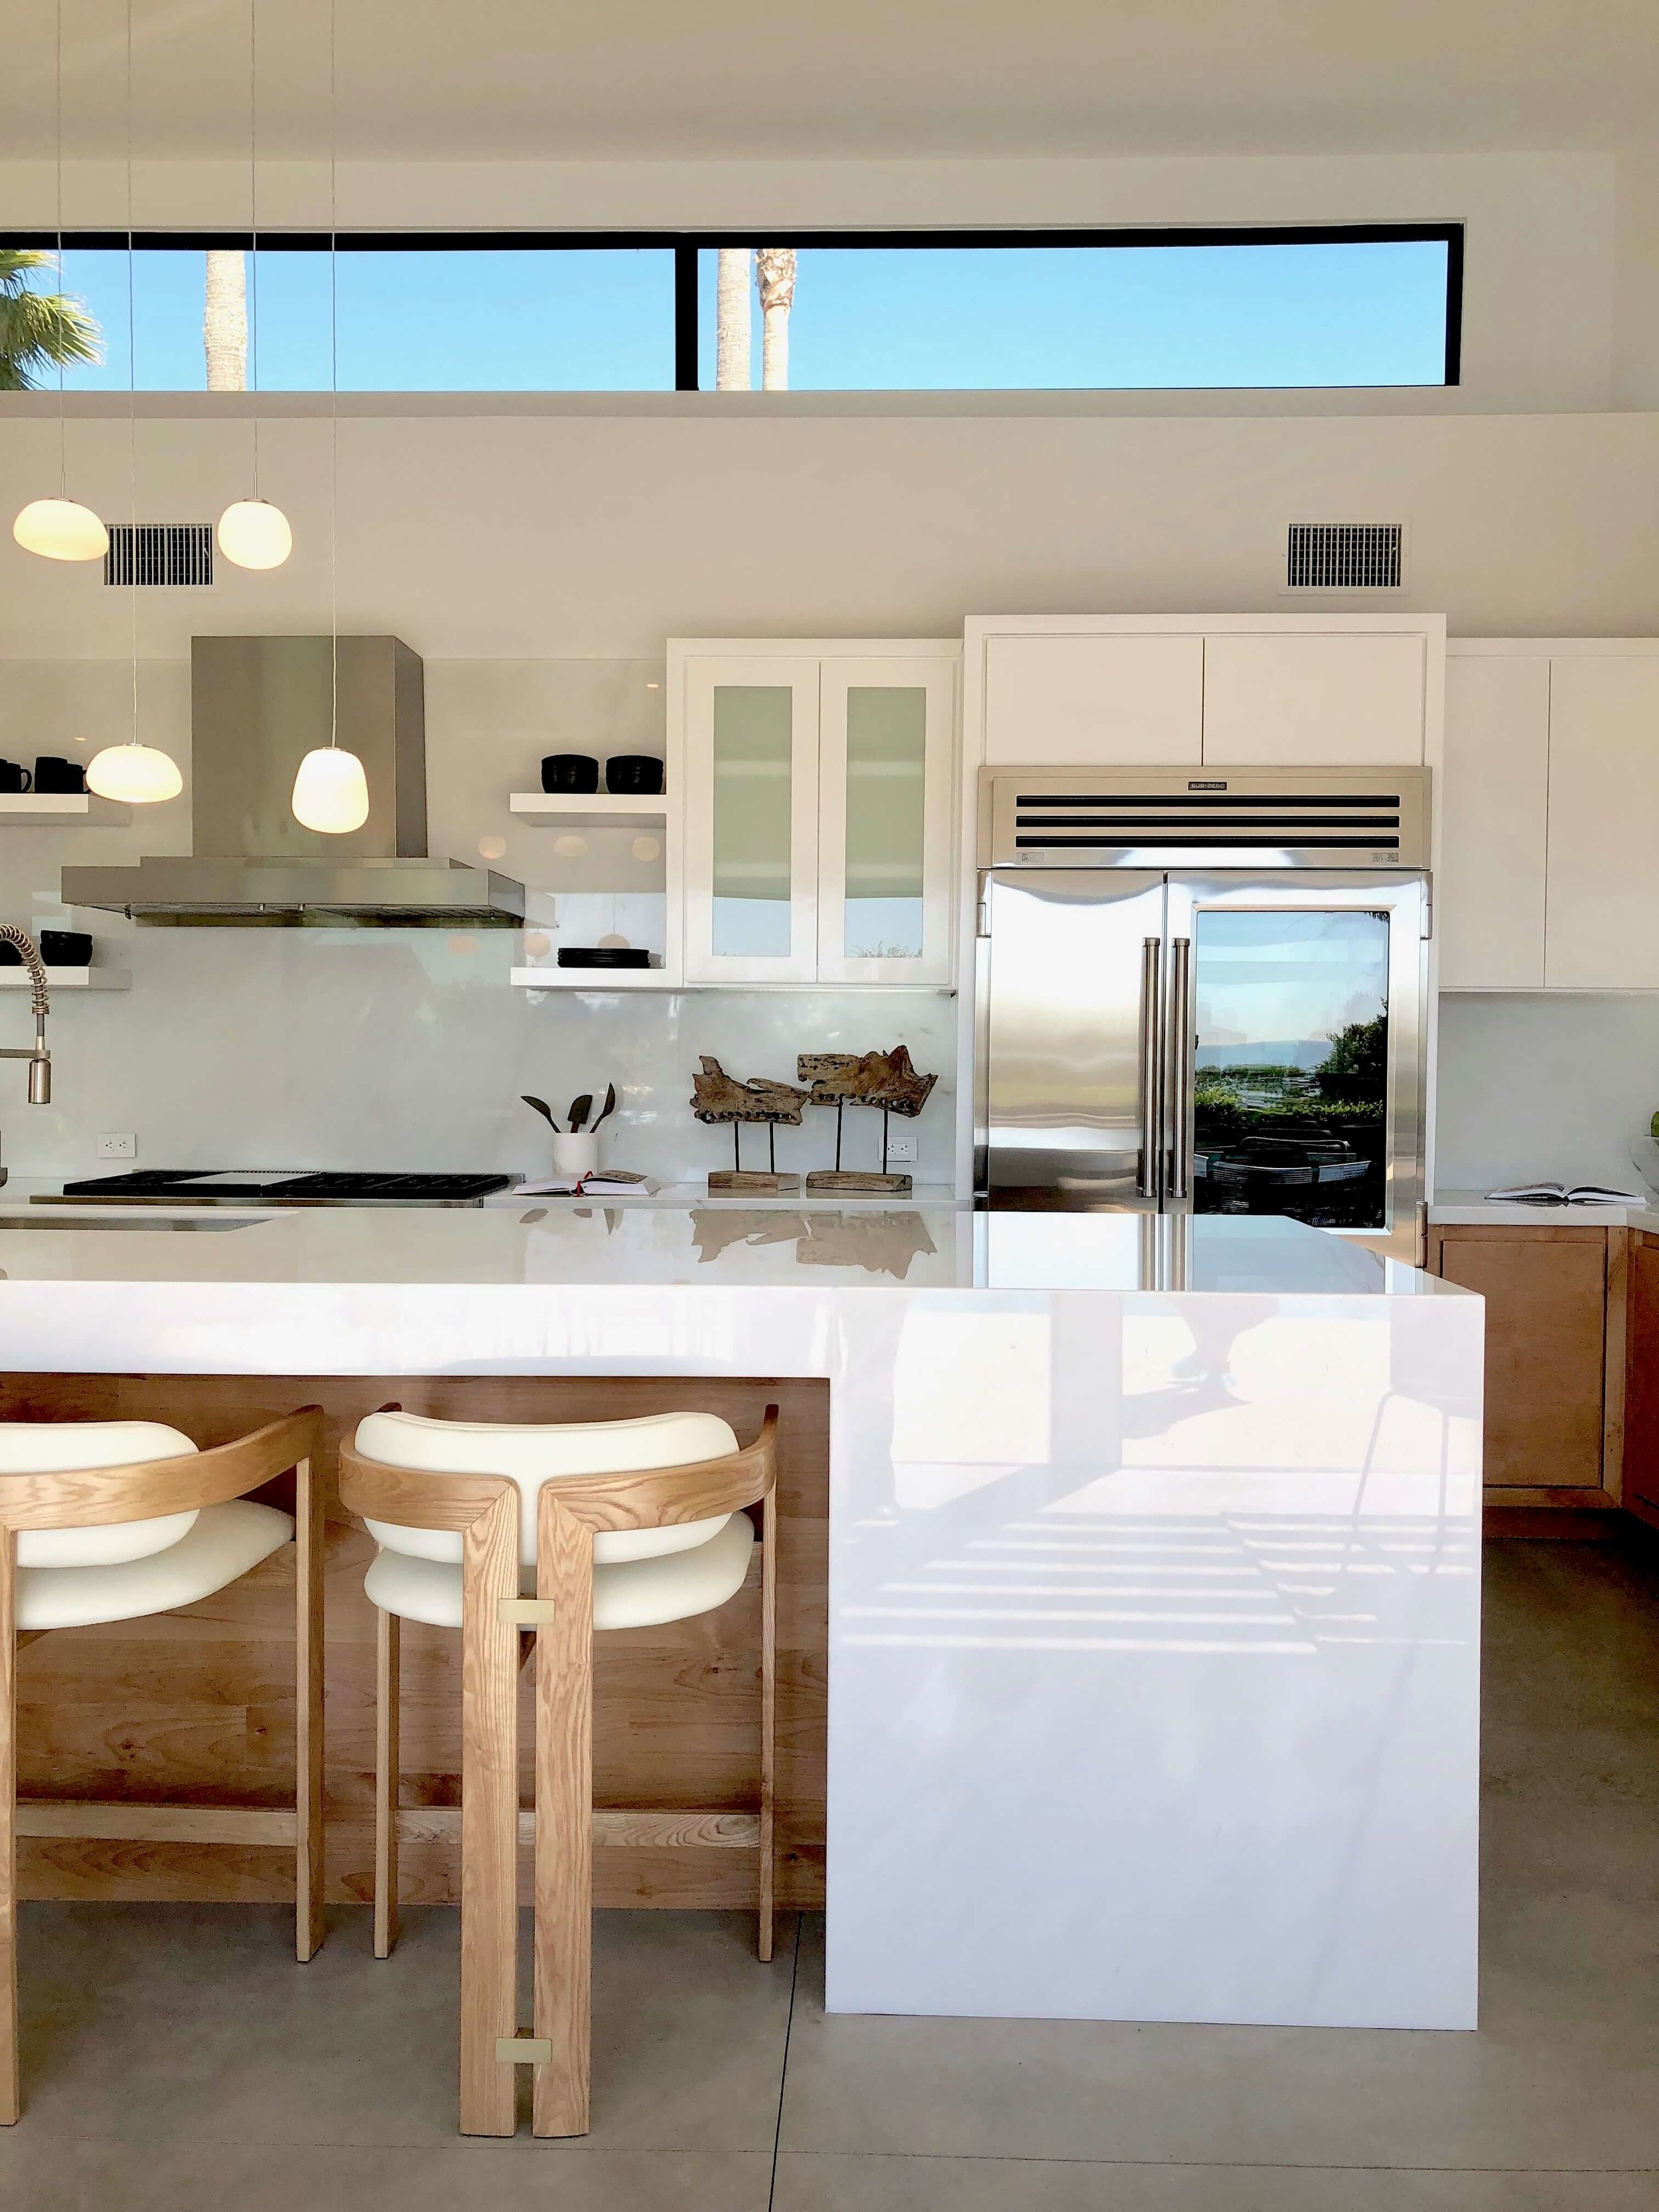 Why Thick Countertops Make a Strong Design Statement | Designer: Vitus Mitare, See more about this  contemporary home here.  #kitchendesign #kitchencountertops